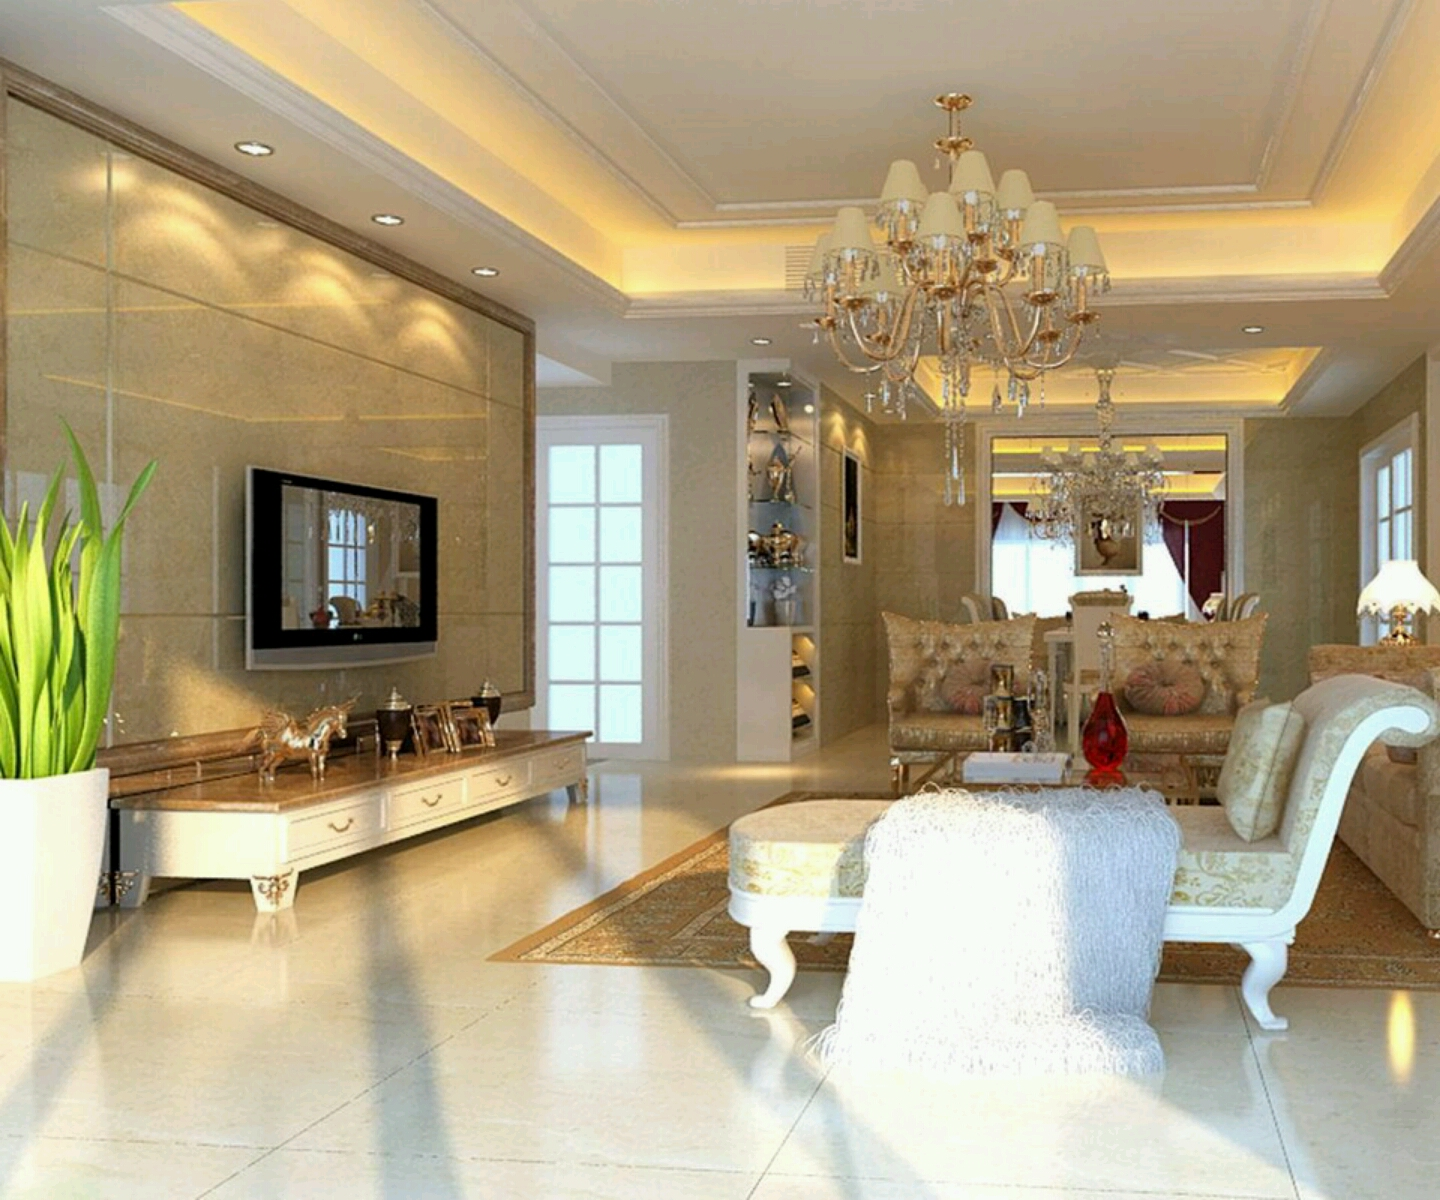 Home Design Ideas Living Room: Home Decor 2012: Luxury Homes Interior Decoration Living